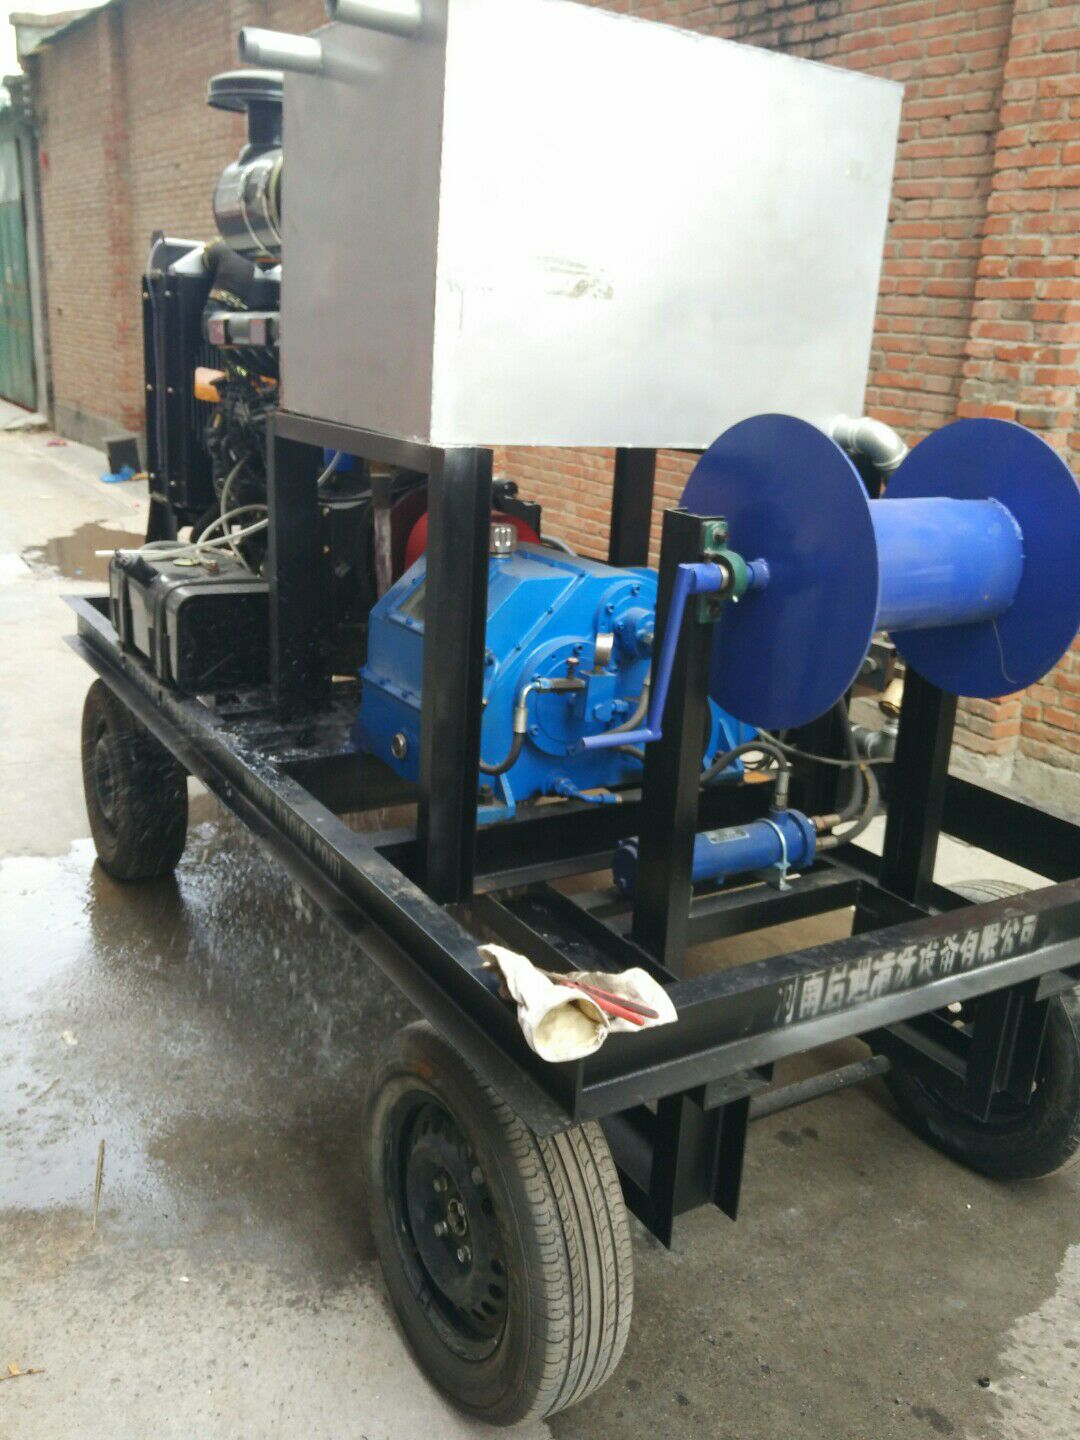 Diesel Drive High Pressure Water Jet Cleaner Cleaning Equipment